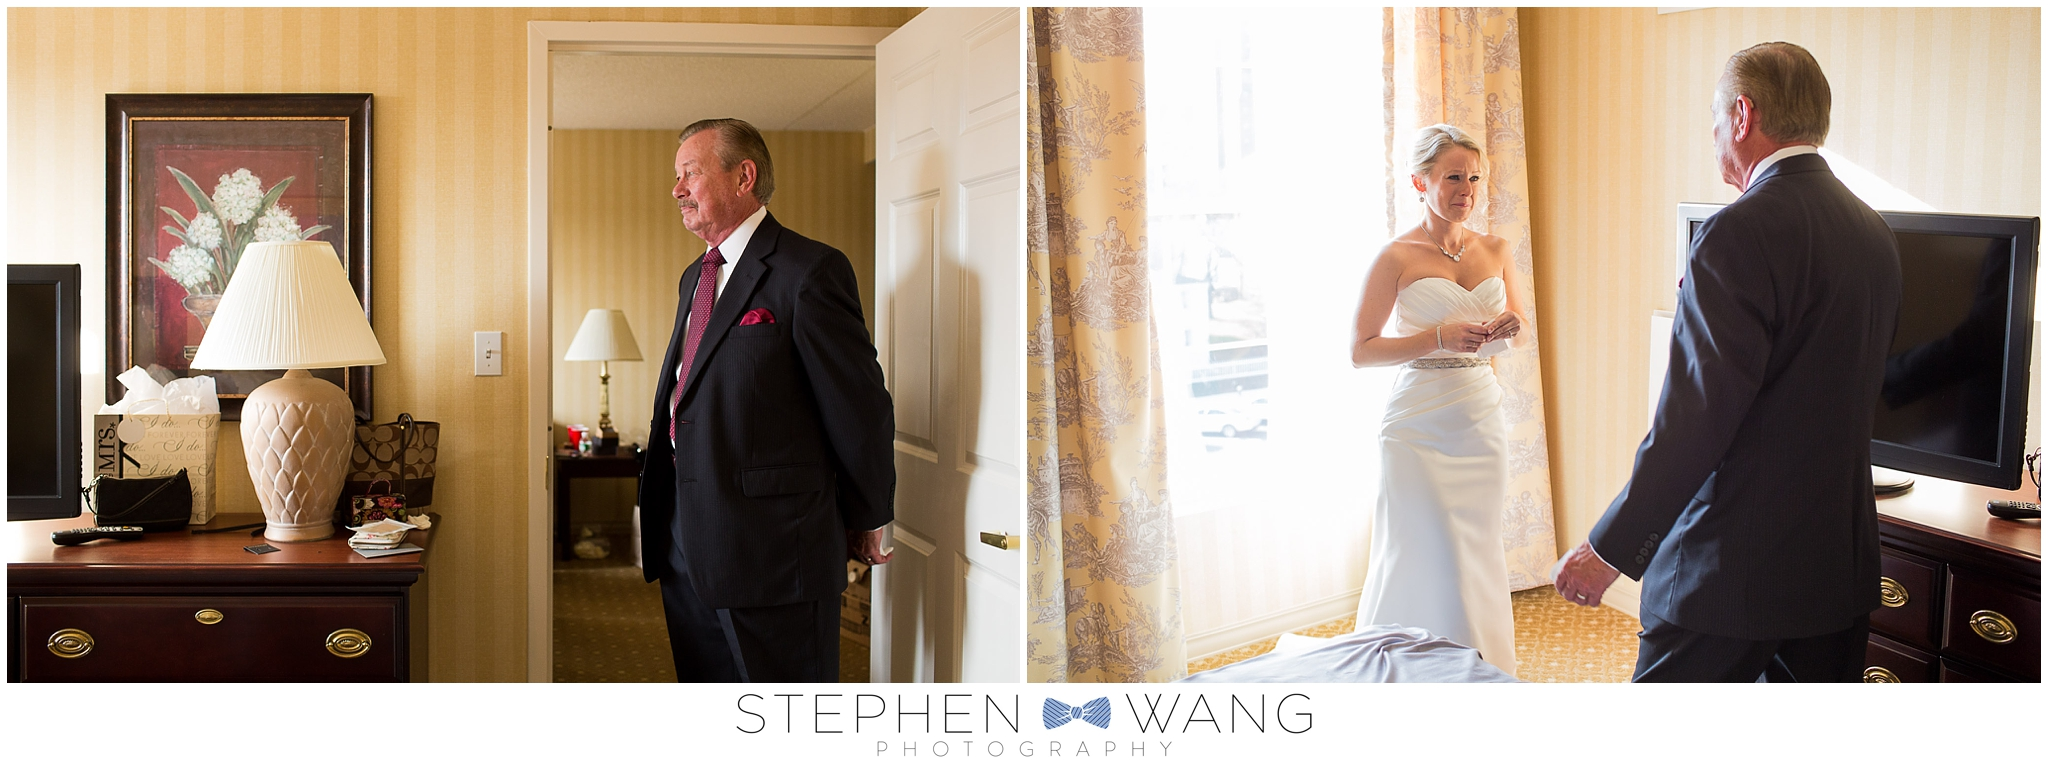 Stephen Wang Photography winter wedding connecticut east haddam riverhouse haddam ct middletown inn christmas wedding photography connecticut photographer-01-15_0005.jpg